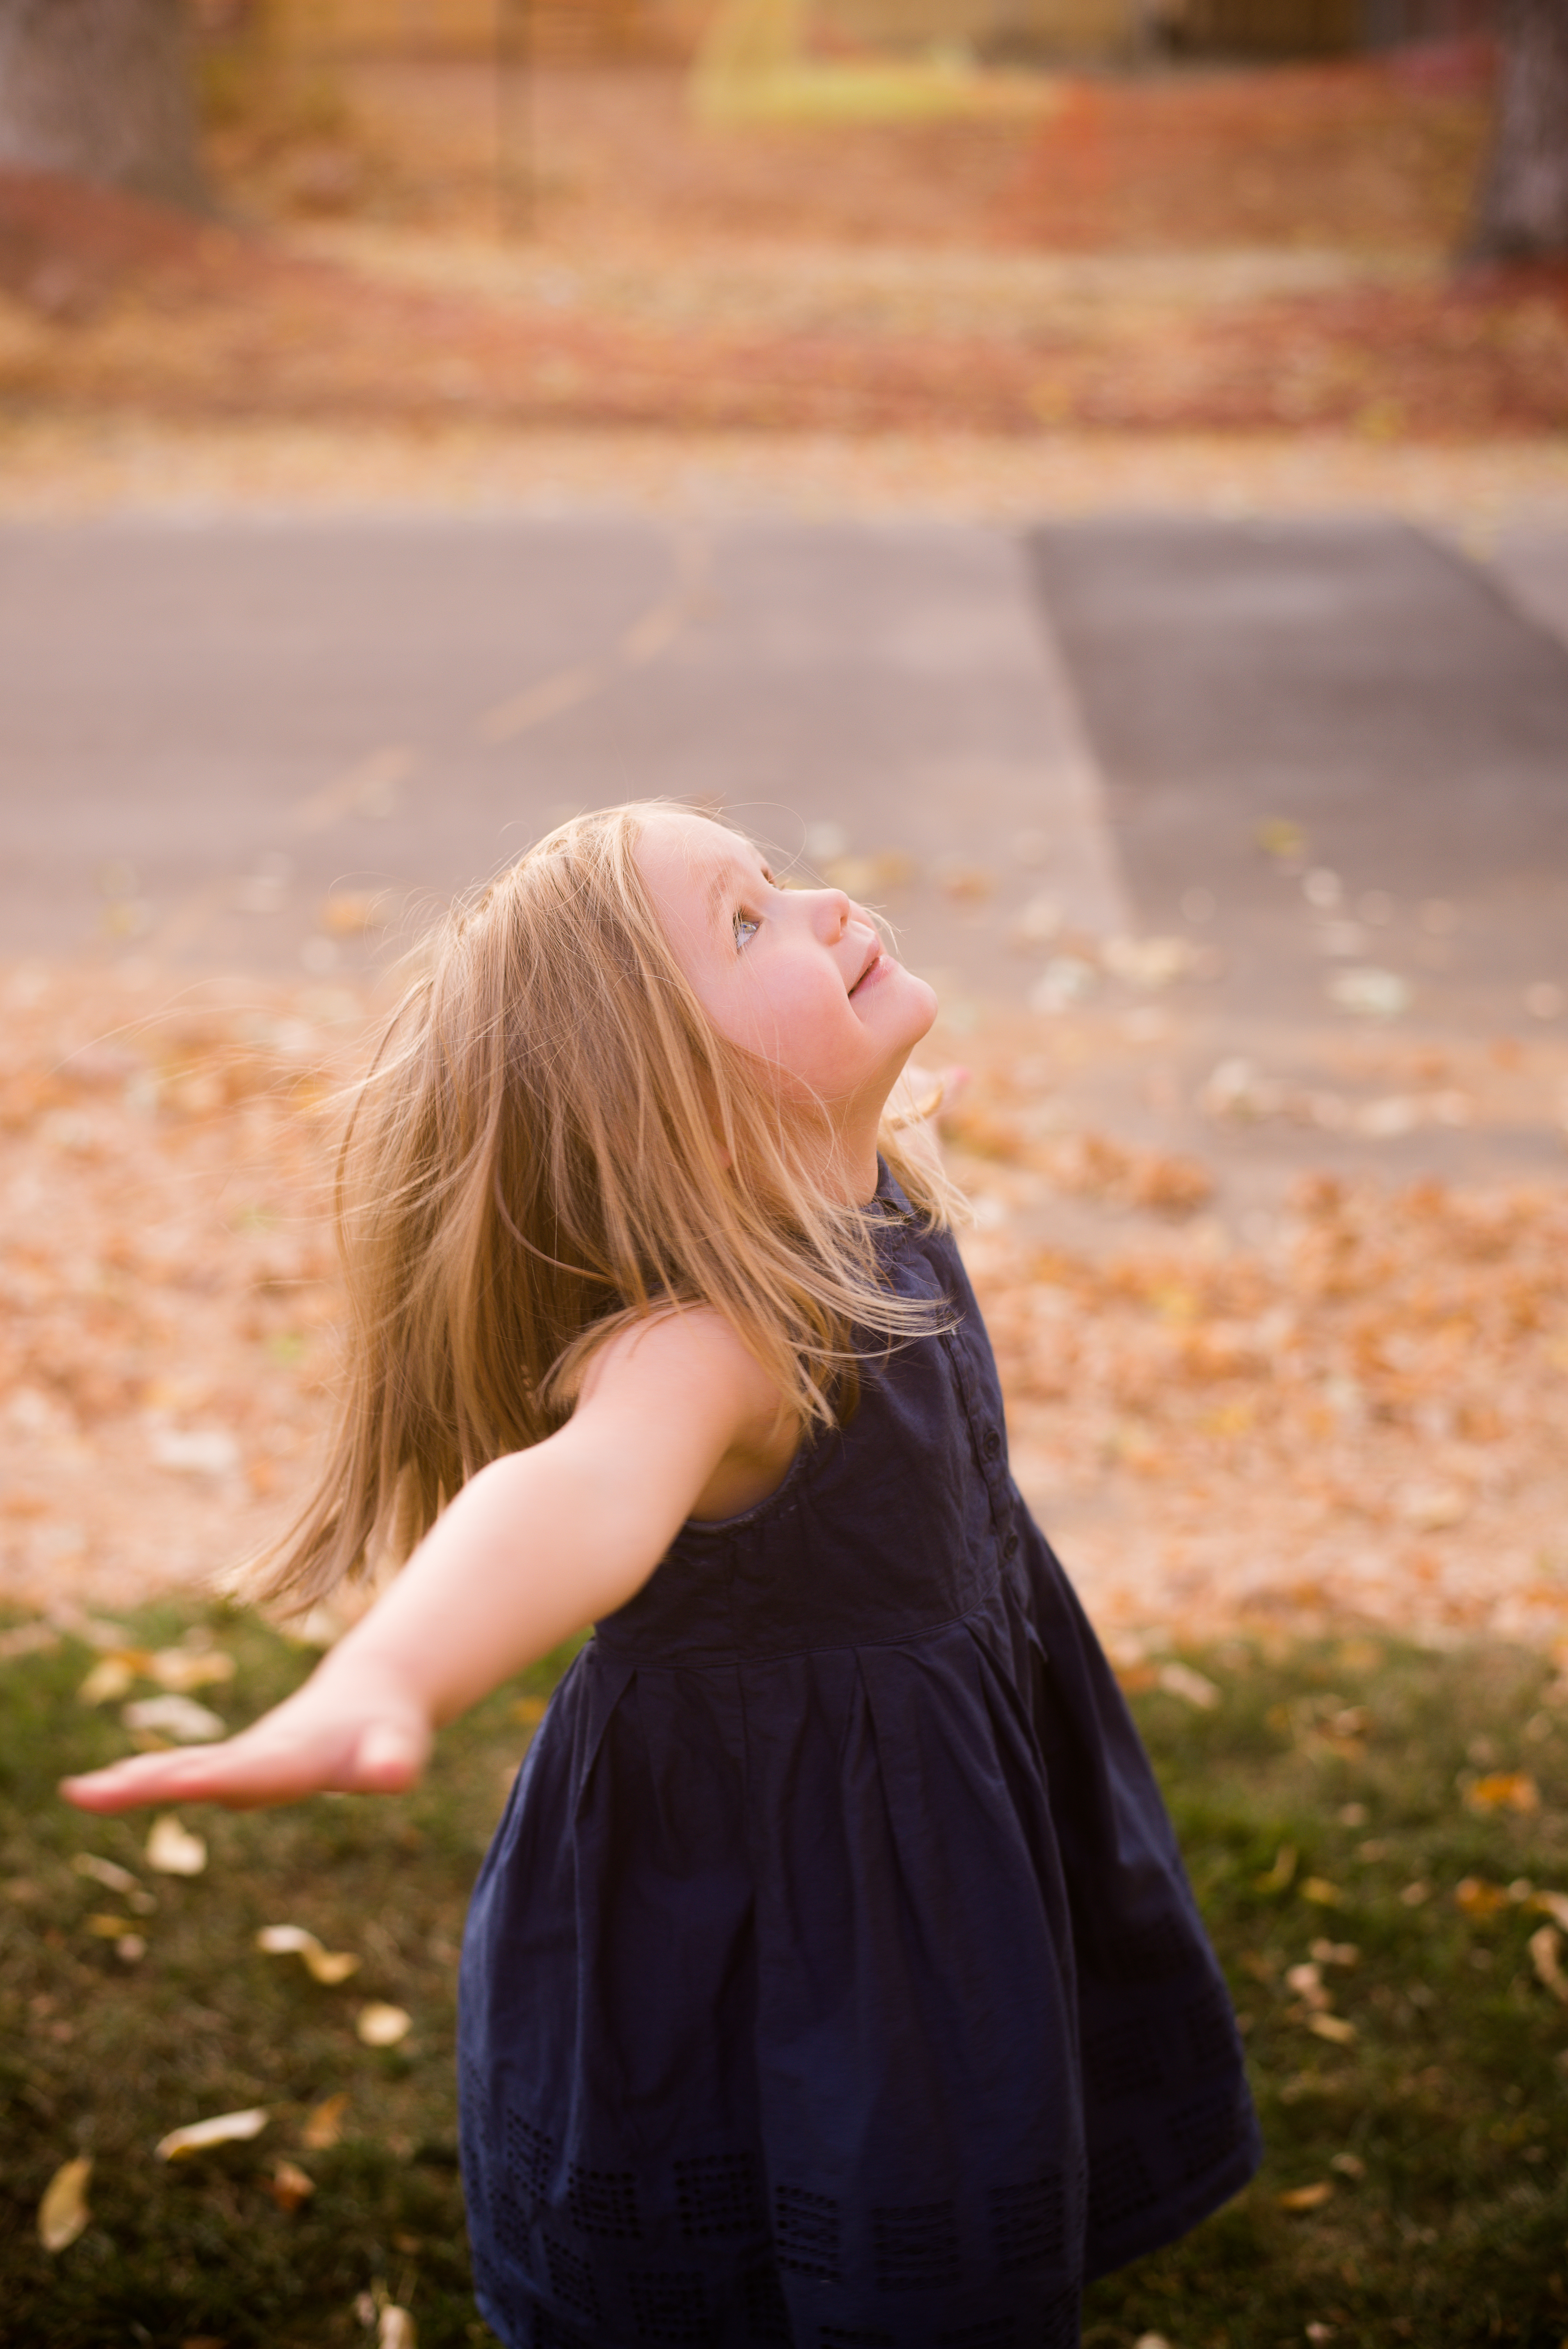 Little girl gazing up at sun in fall